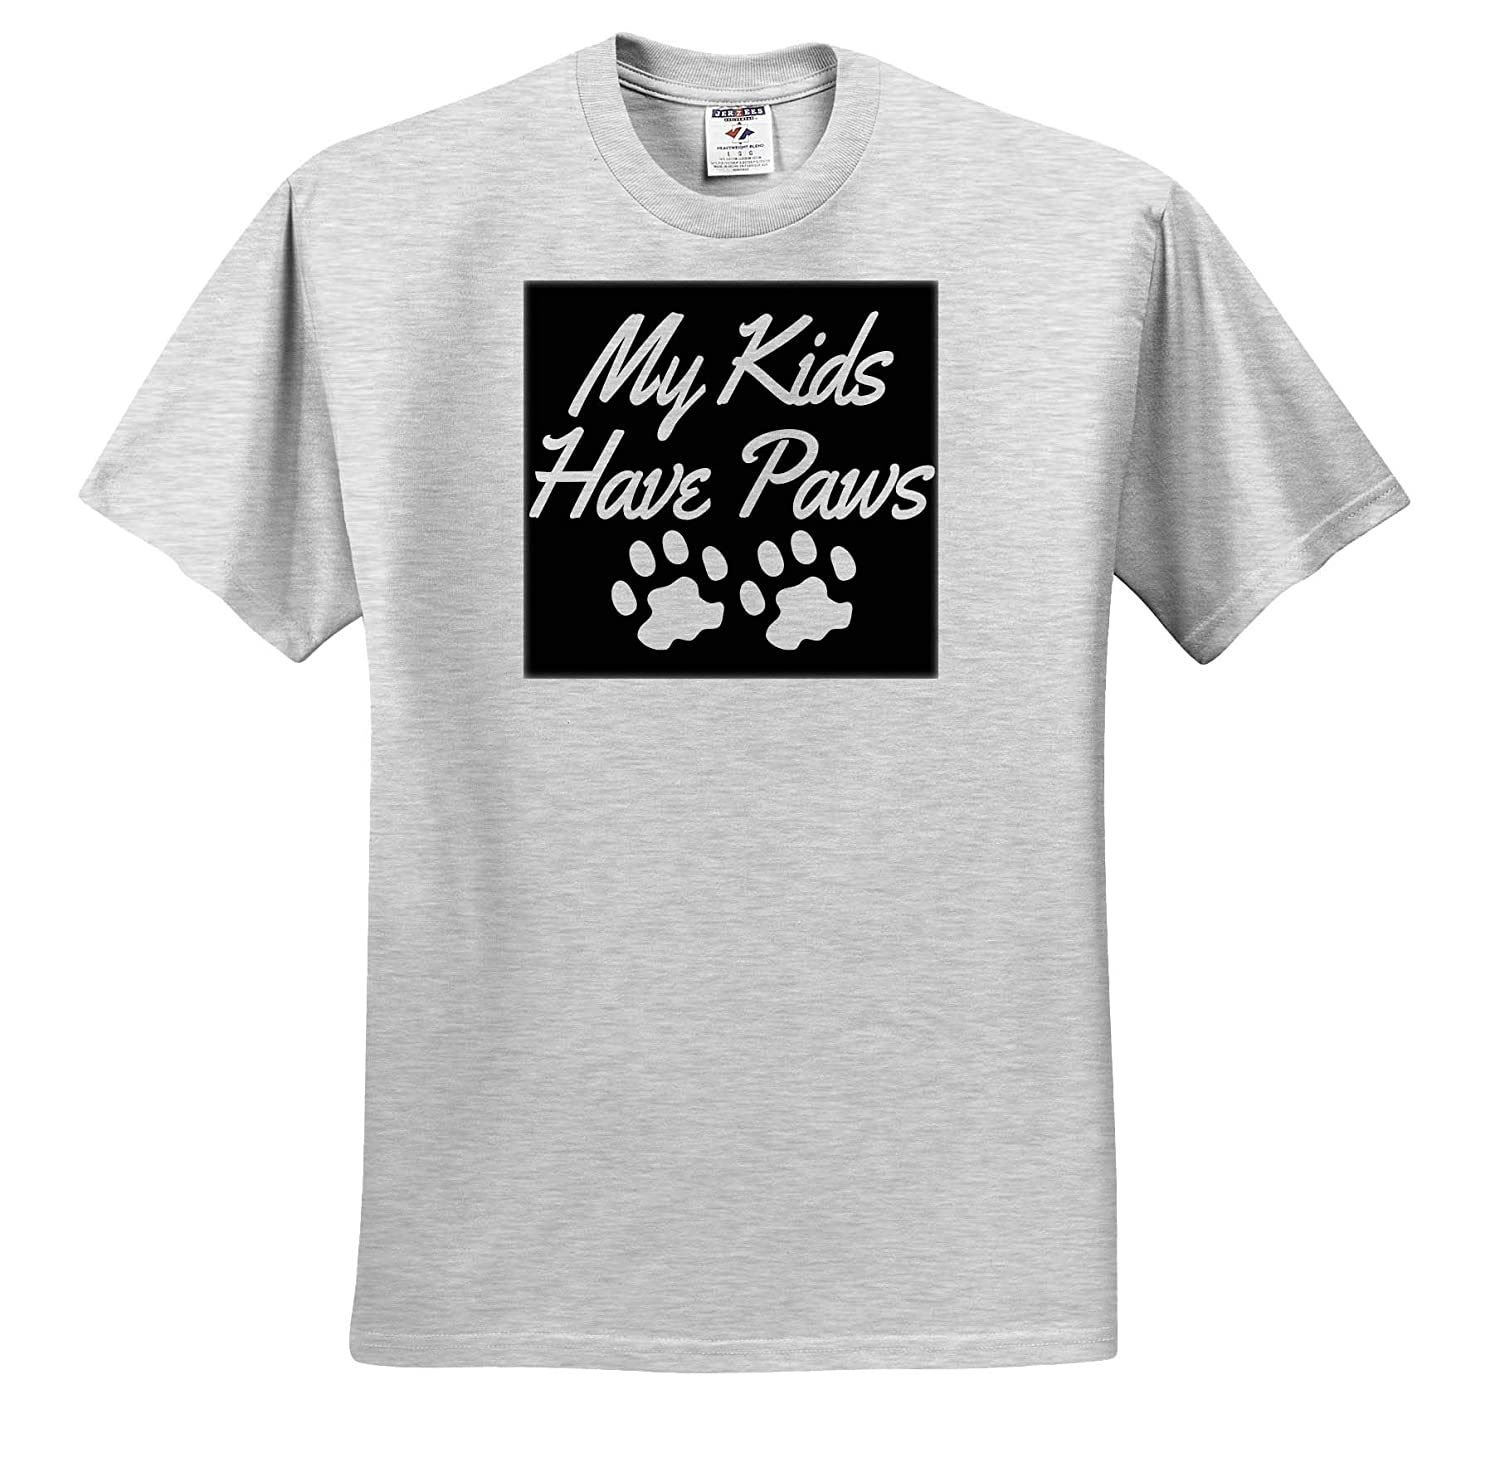 Quotes and Sayings Adult T-Shirt XL ts/_319229 3dRose Anne Marie Baugh My Kids Have Paws